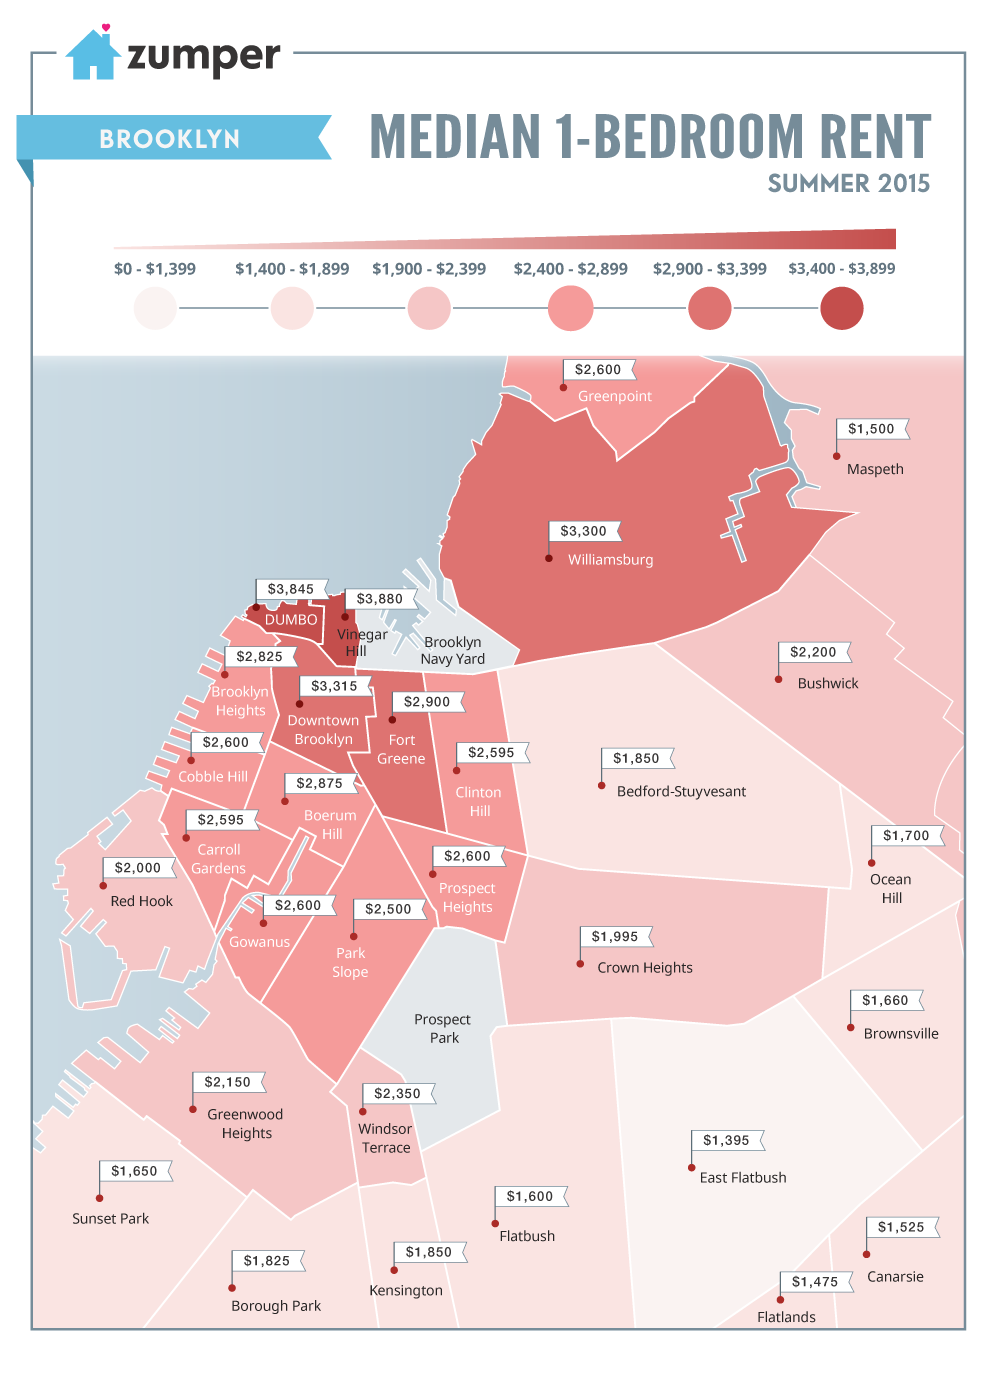 The Cheapest And Most Expensive Nyc Neighborhoods To Rent This